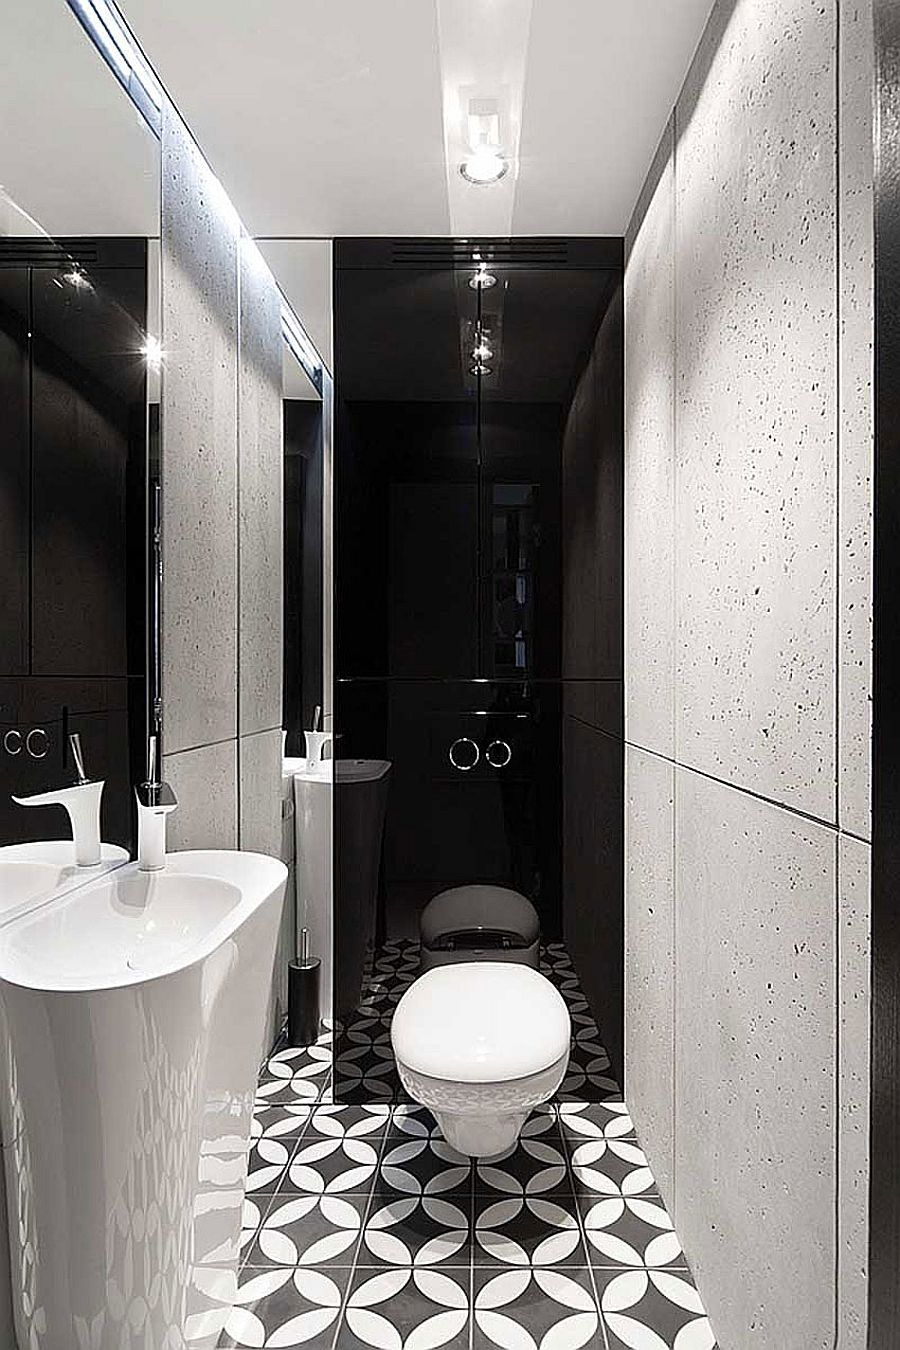 Charmant Geometric Floor Tiles For Small Black And White Bathroom   Decoist